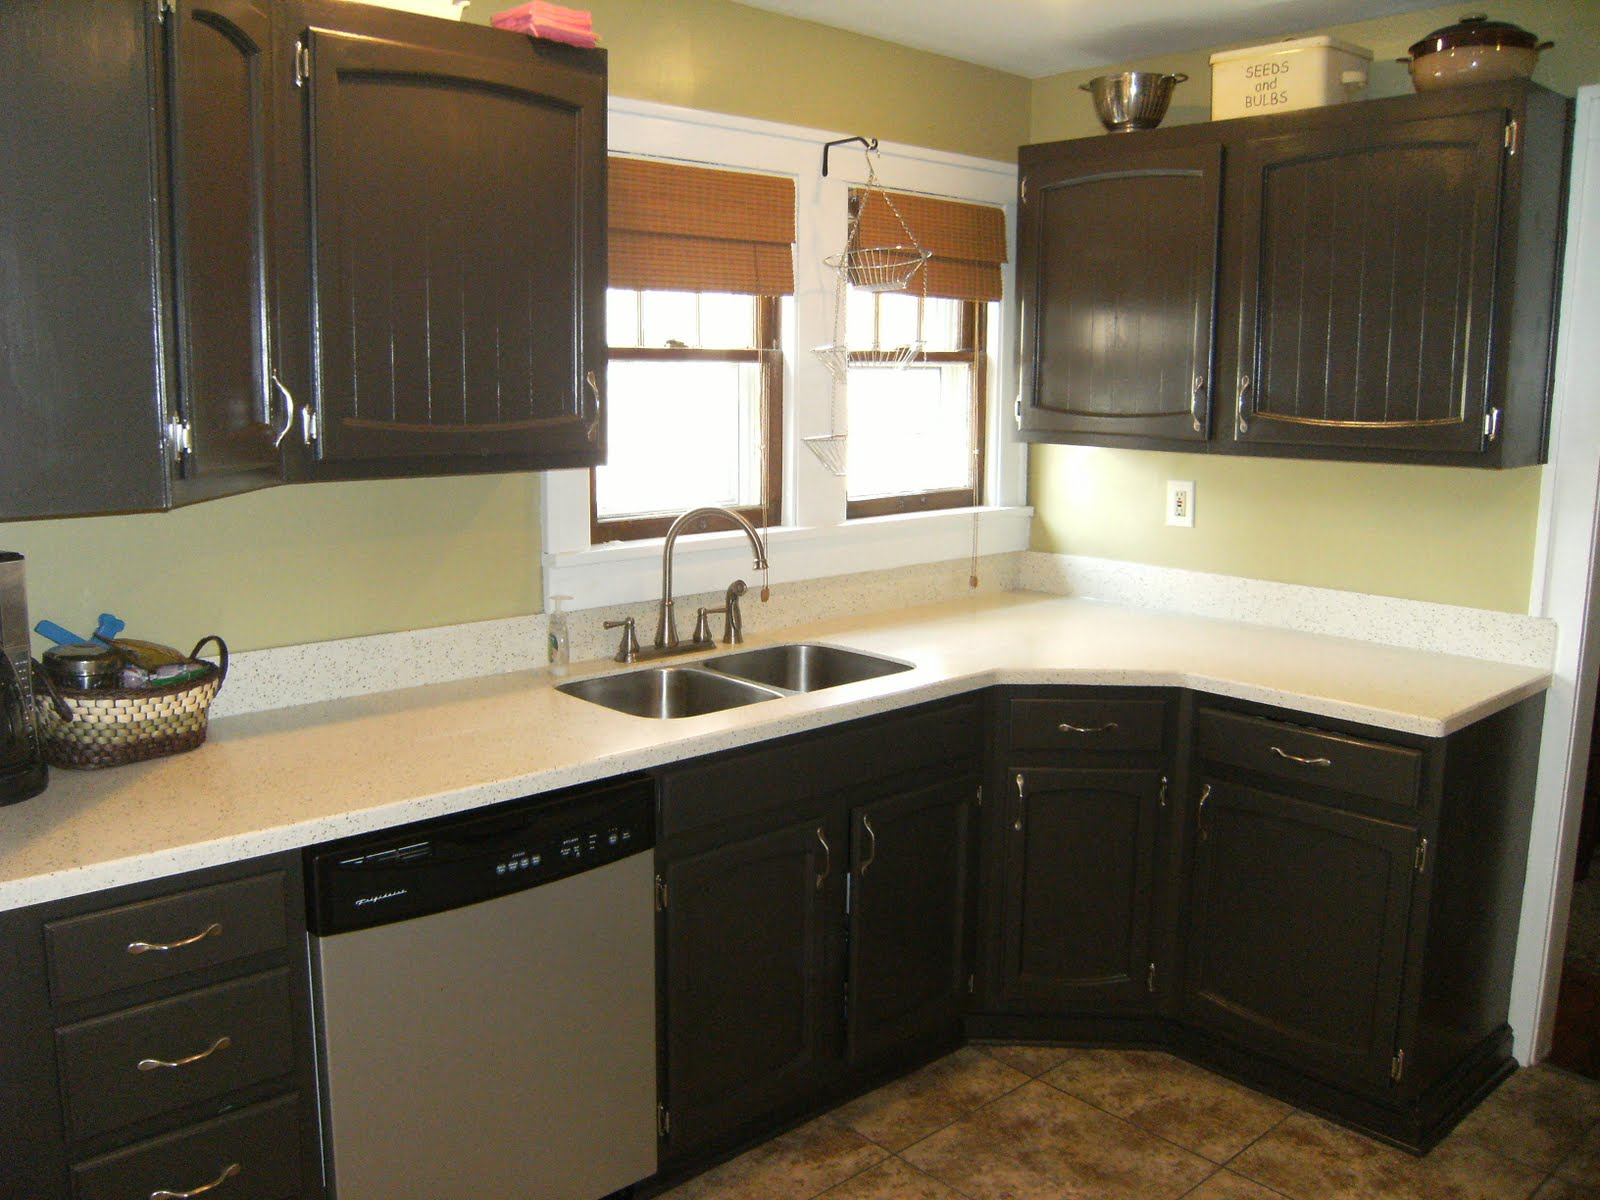 Ideas For Painting Kitchen Cabinets Paint Ideas Painted Kitchen Cabinet  Ideas Homeactive Us